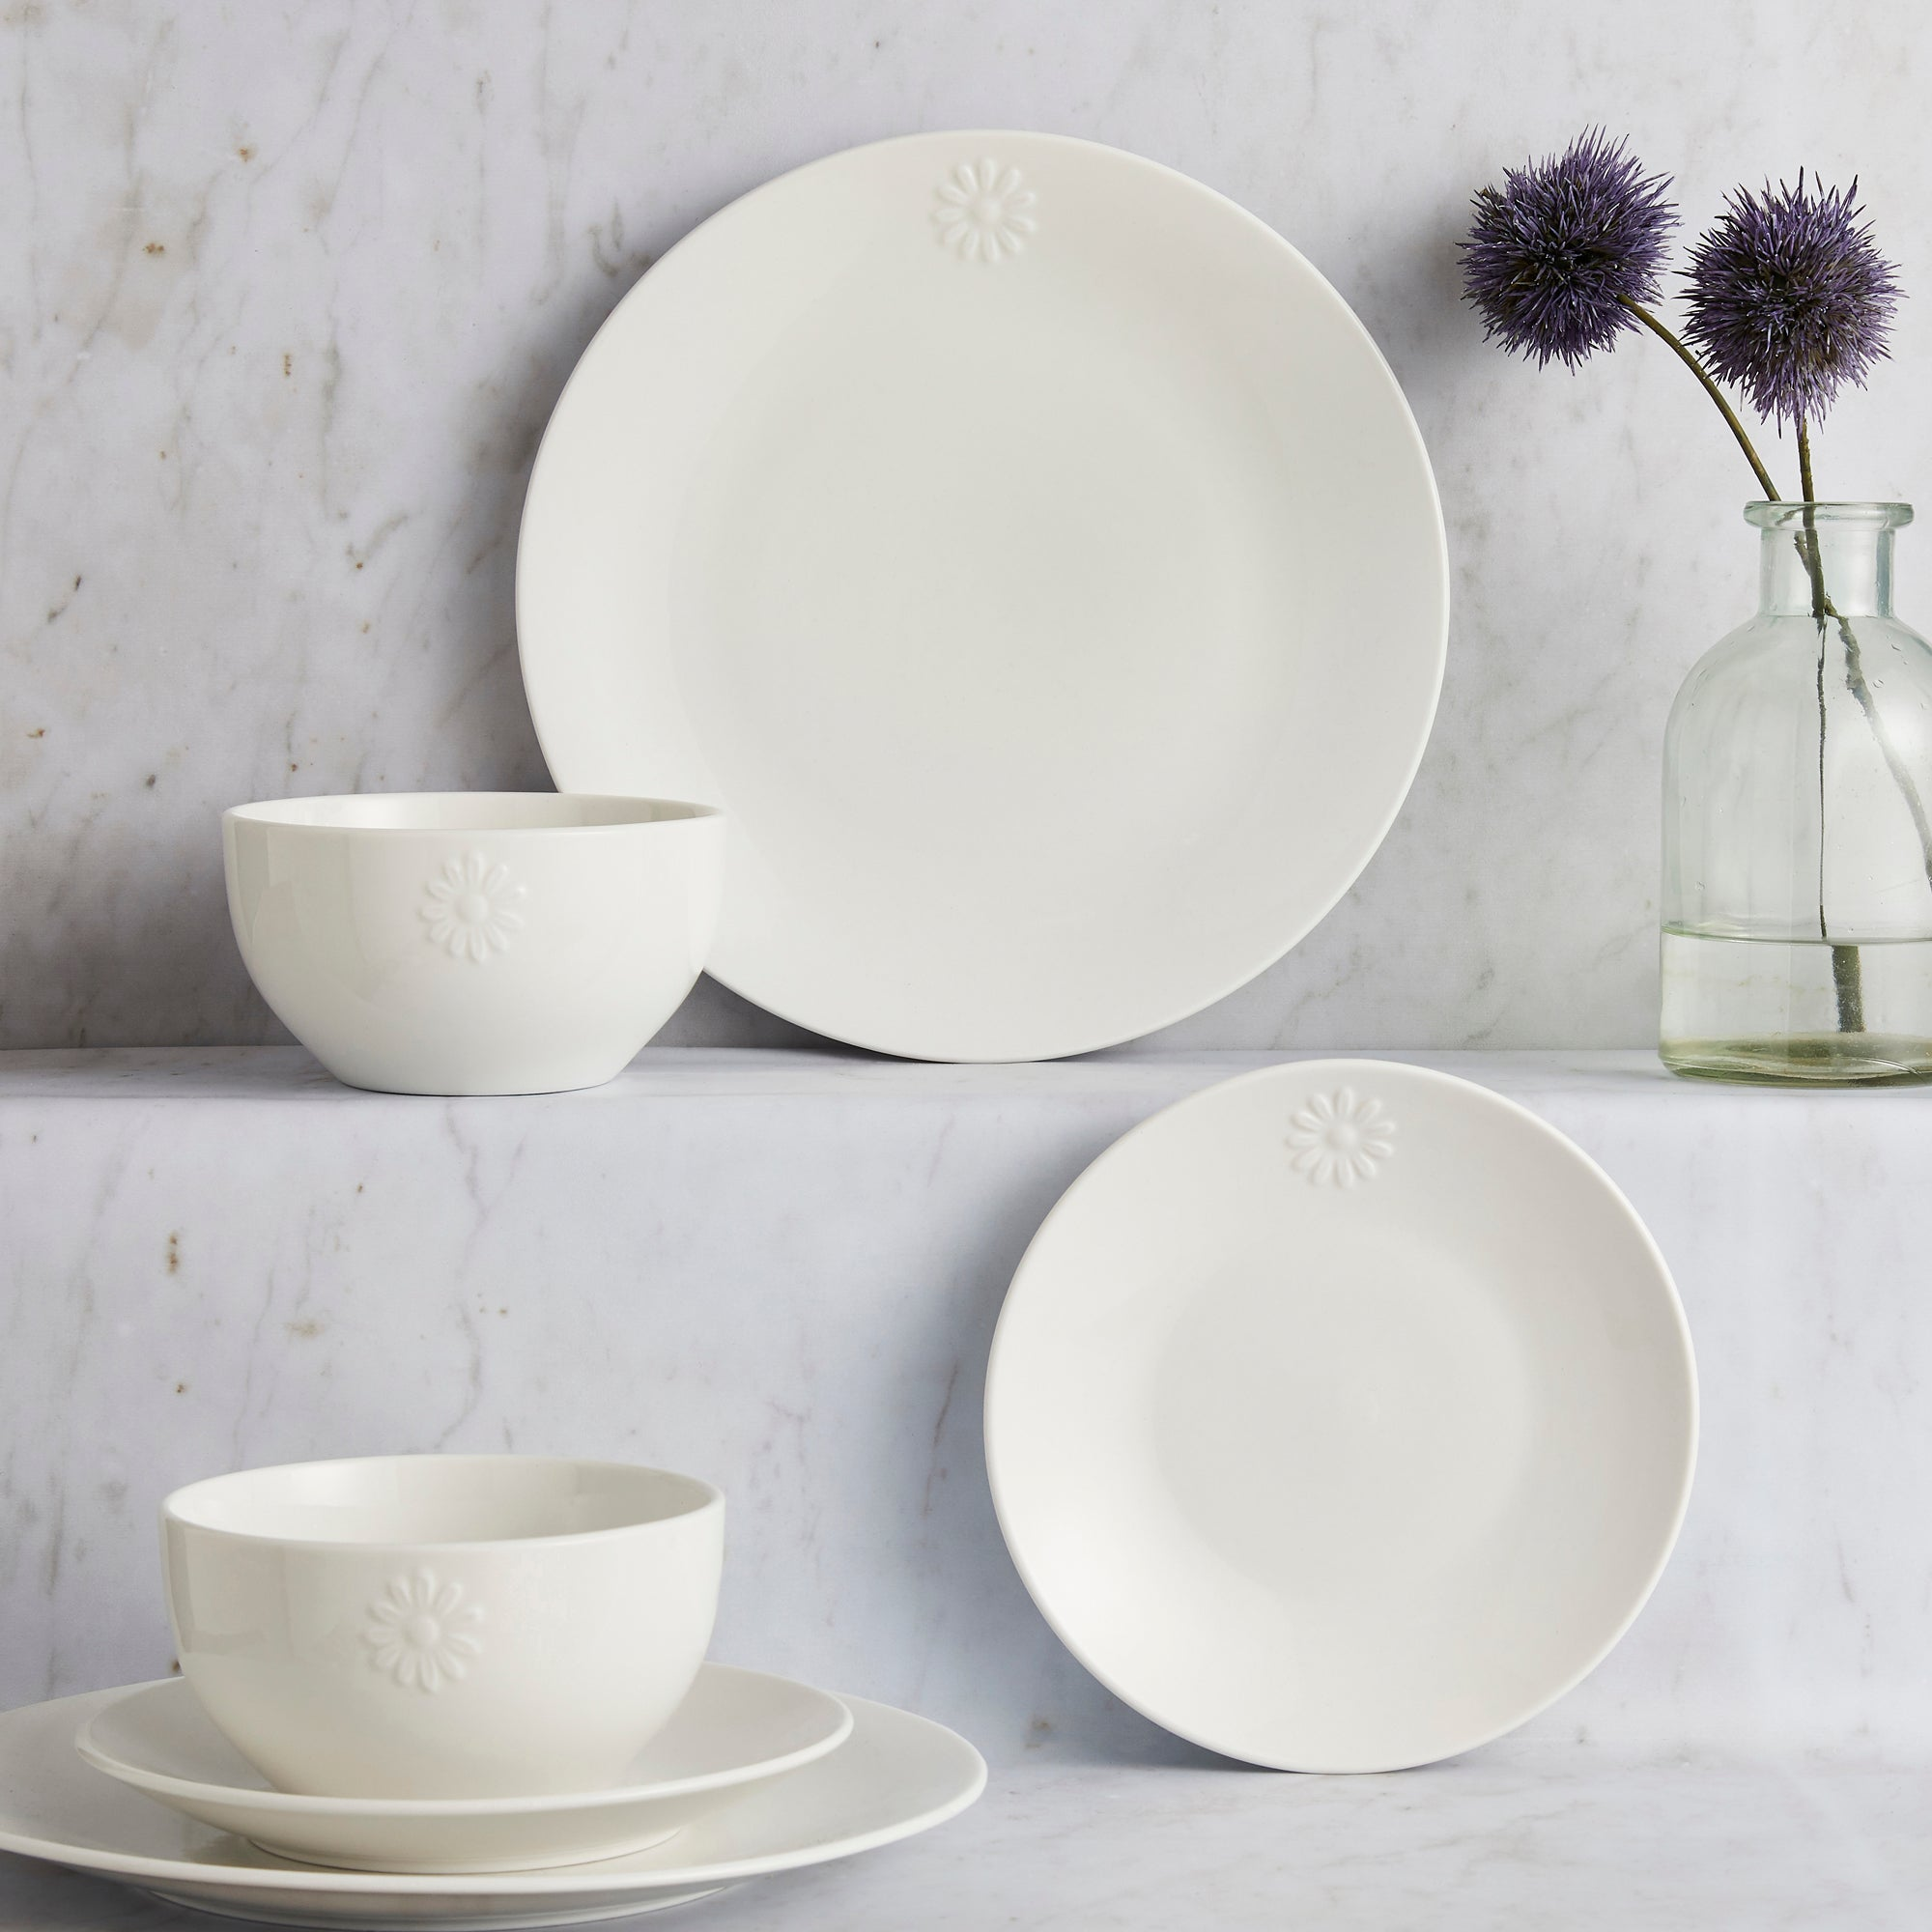 Daisy Collection 12 Piece Dinner Set